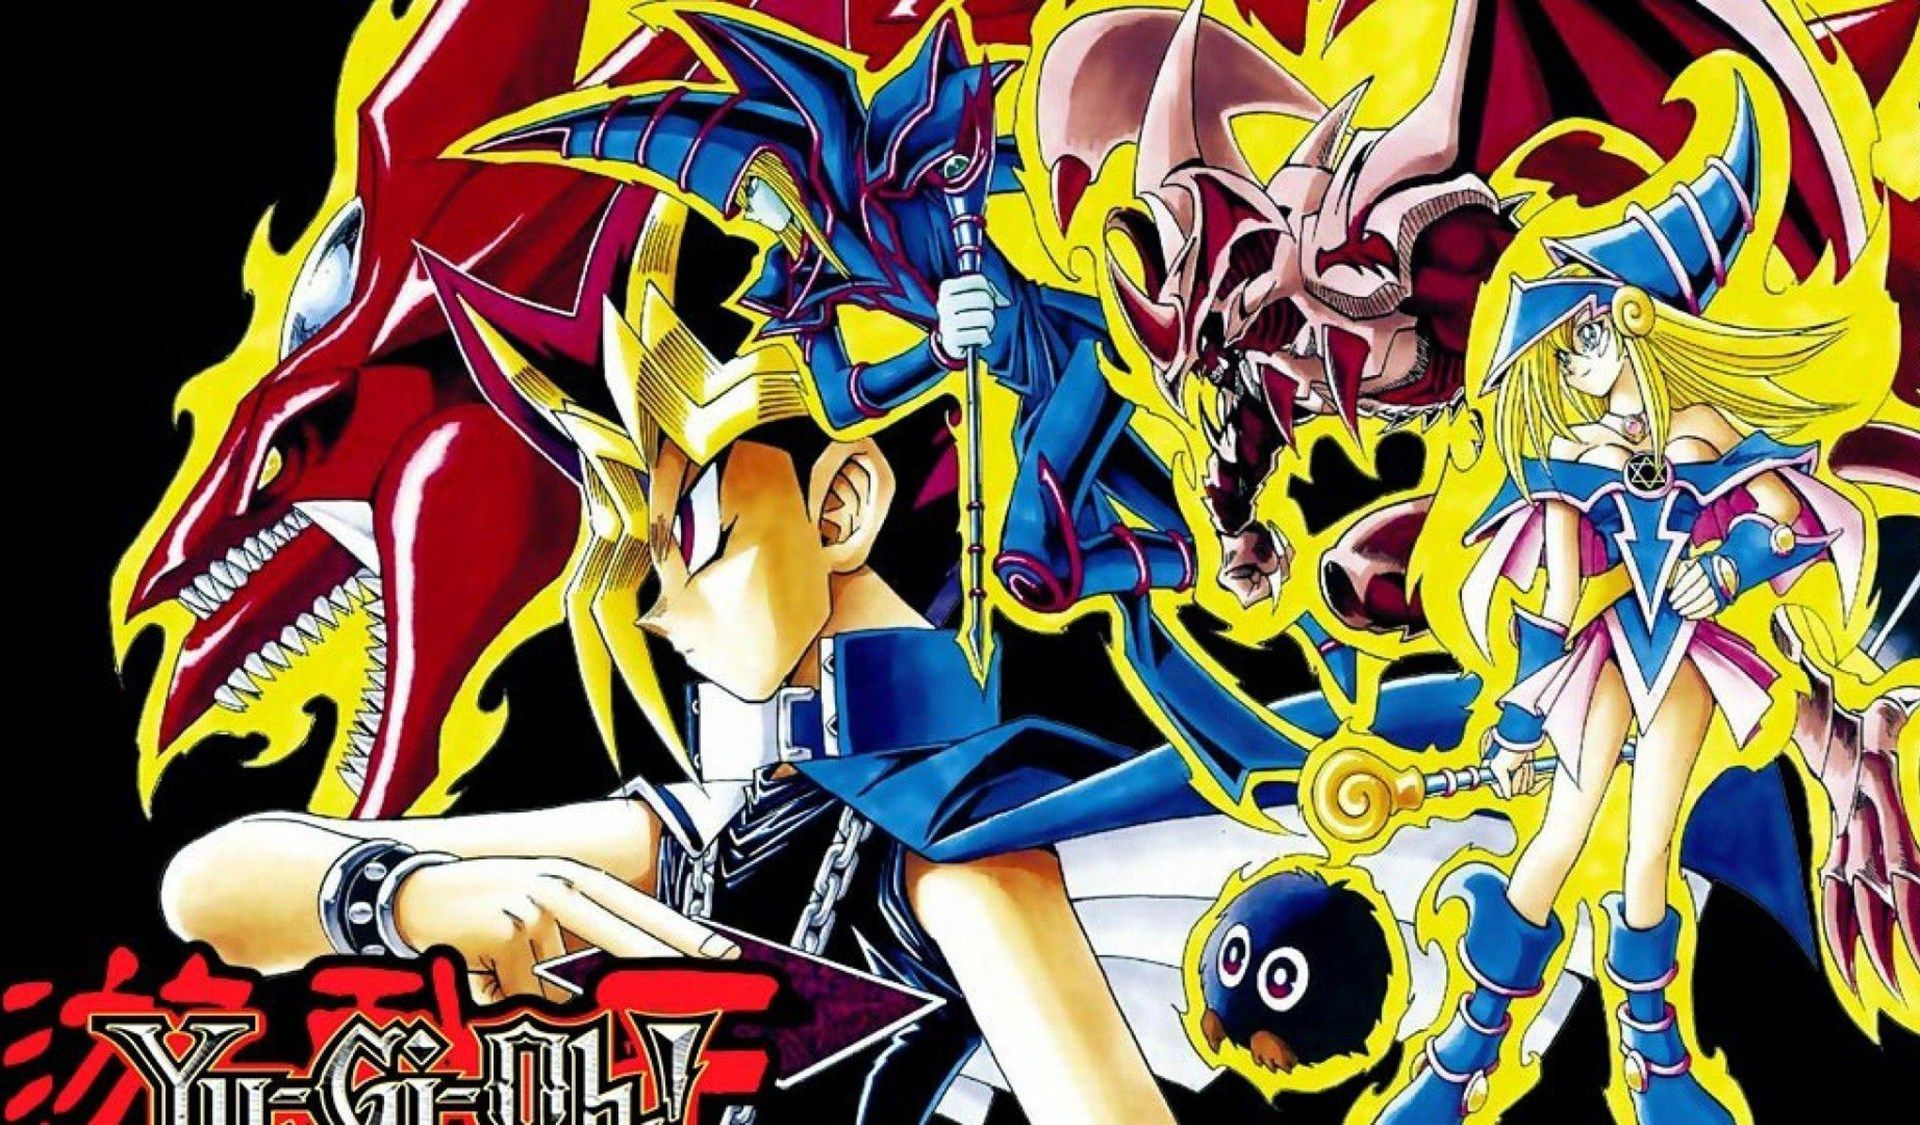 Download Yugioh Backgrounds 遊戯王 作画 楽しい